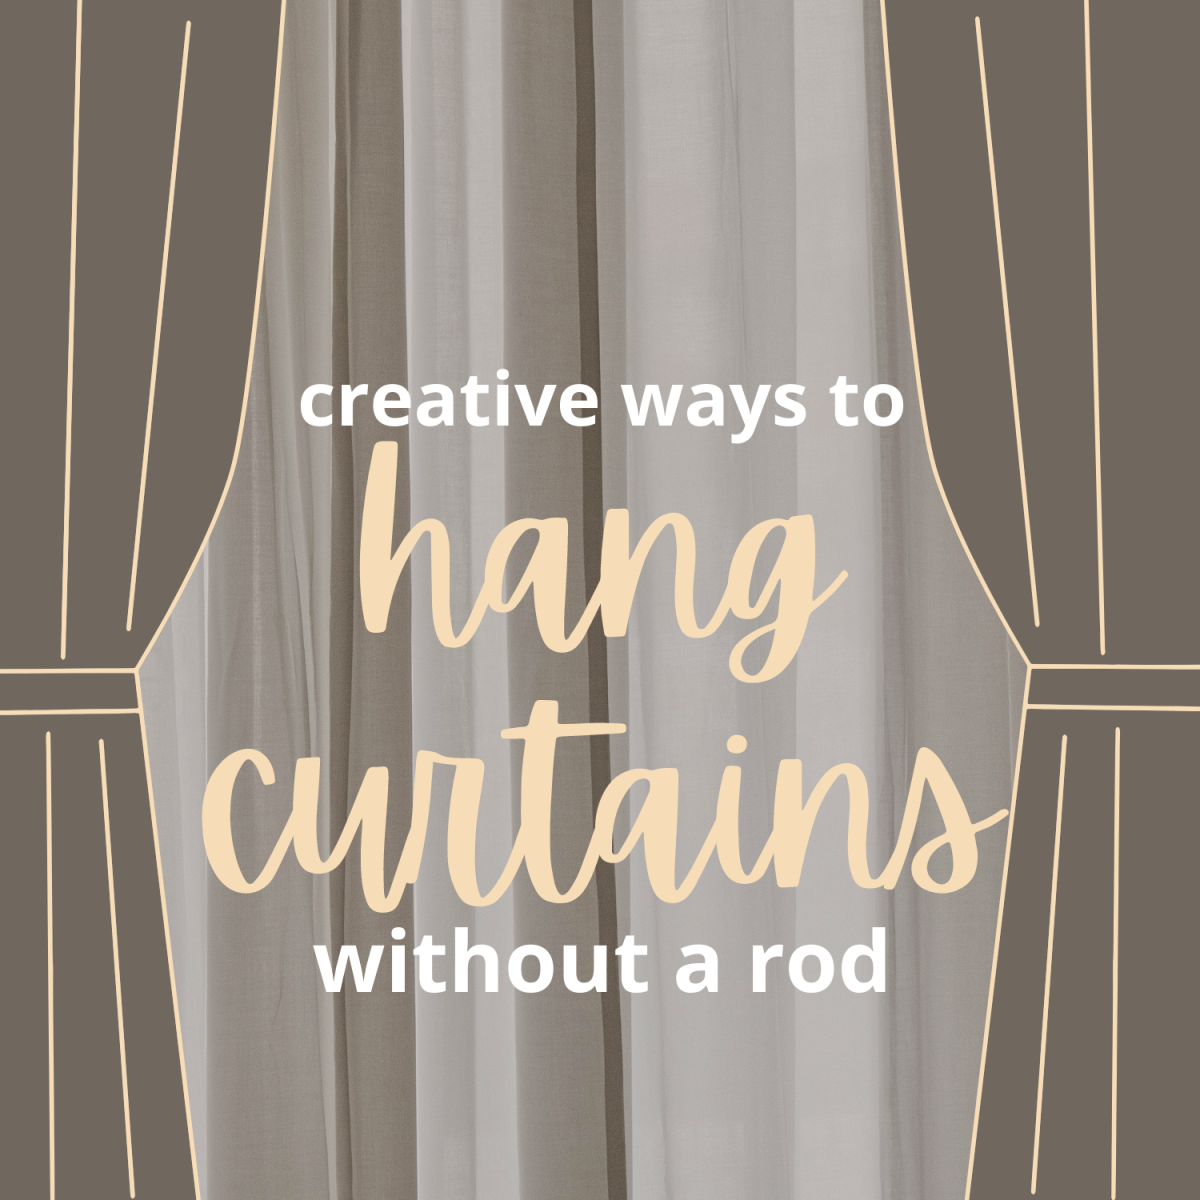 5 creative ways to hang curtains without a rod.